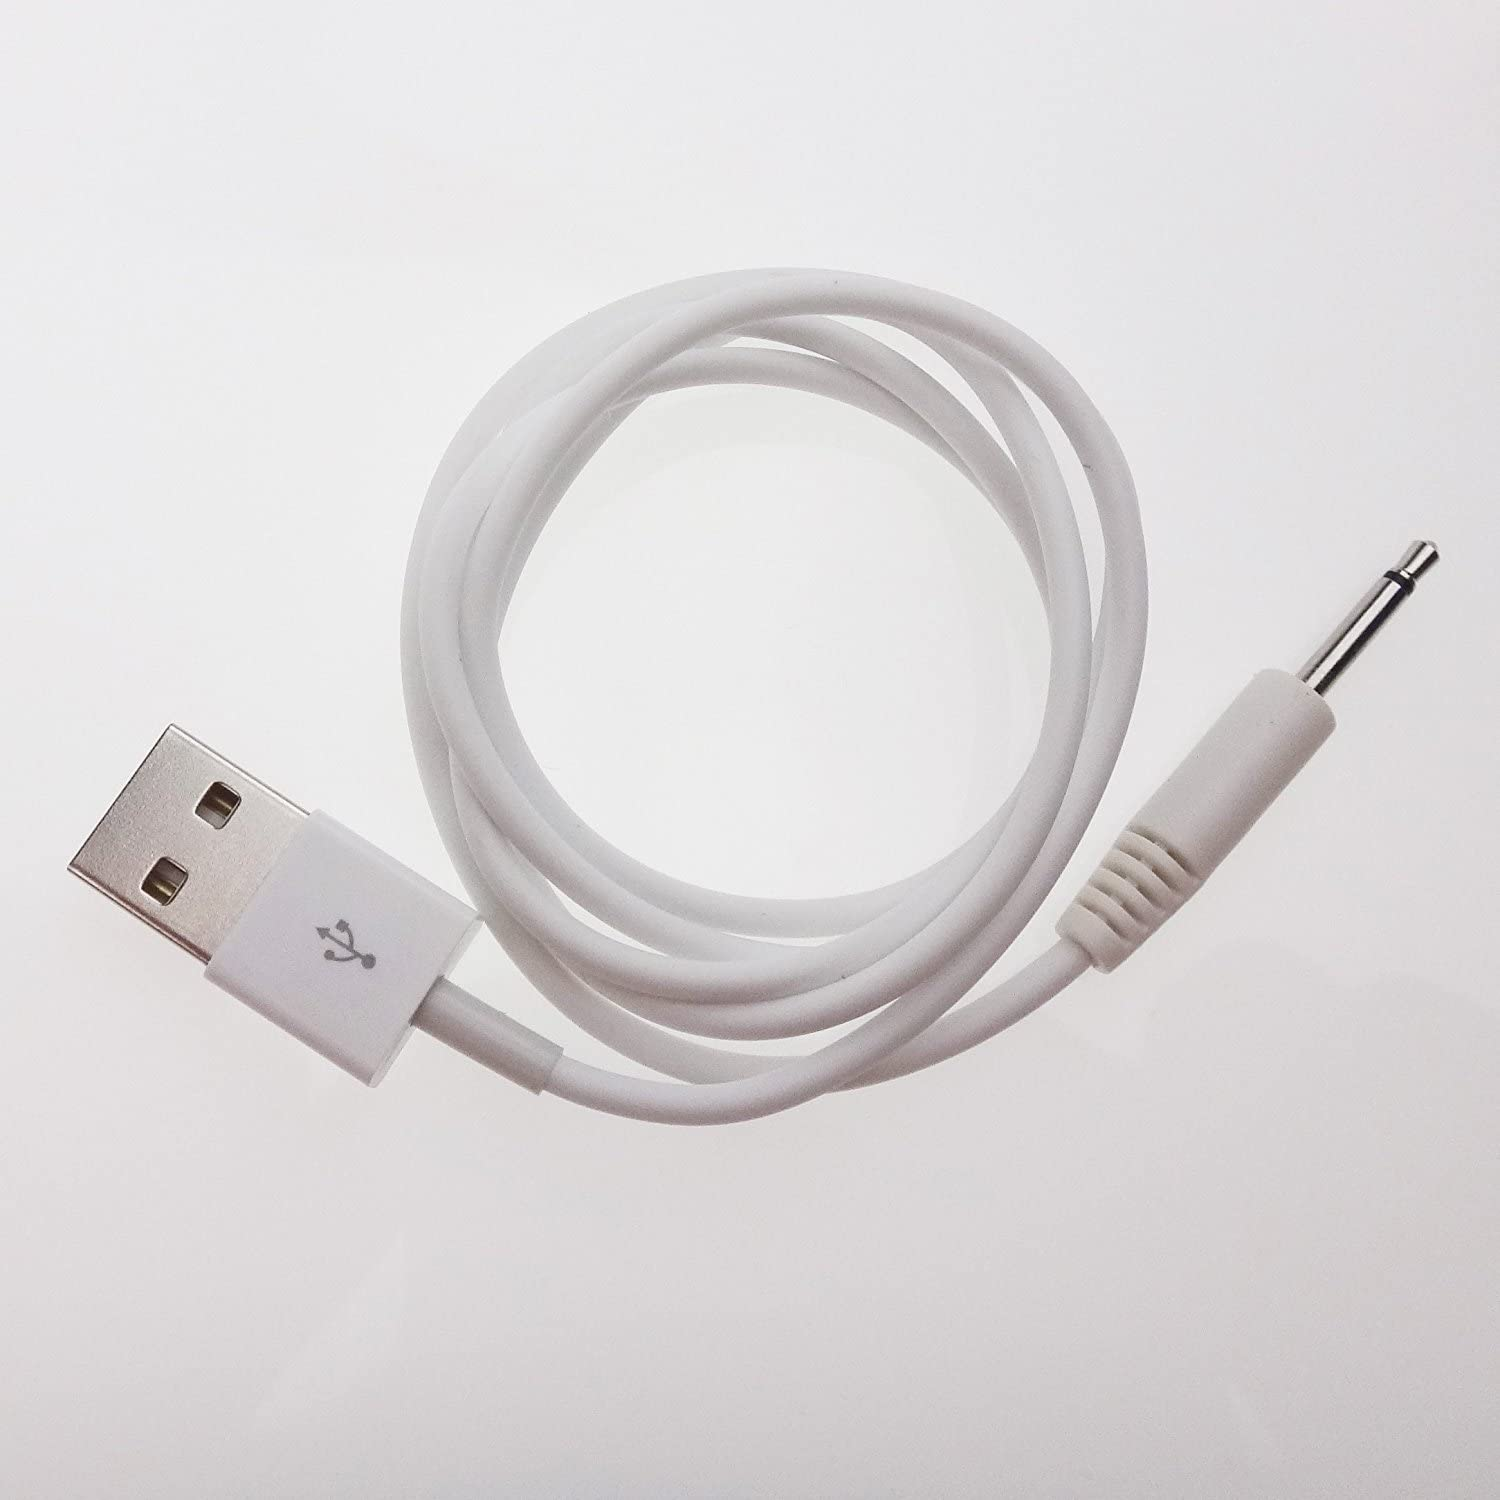 MENTIRO Original Replacement DC Charging Cable USB Cord for Rechargeable Device.25mm